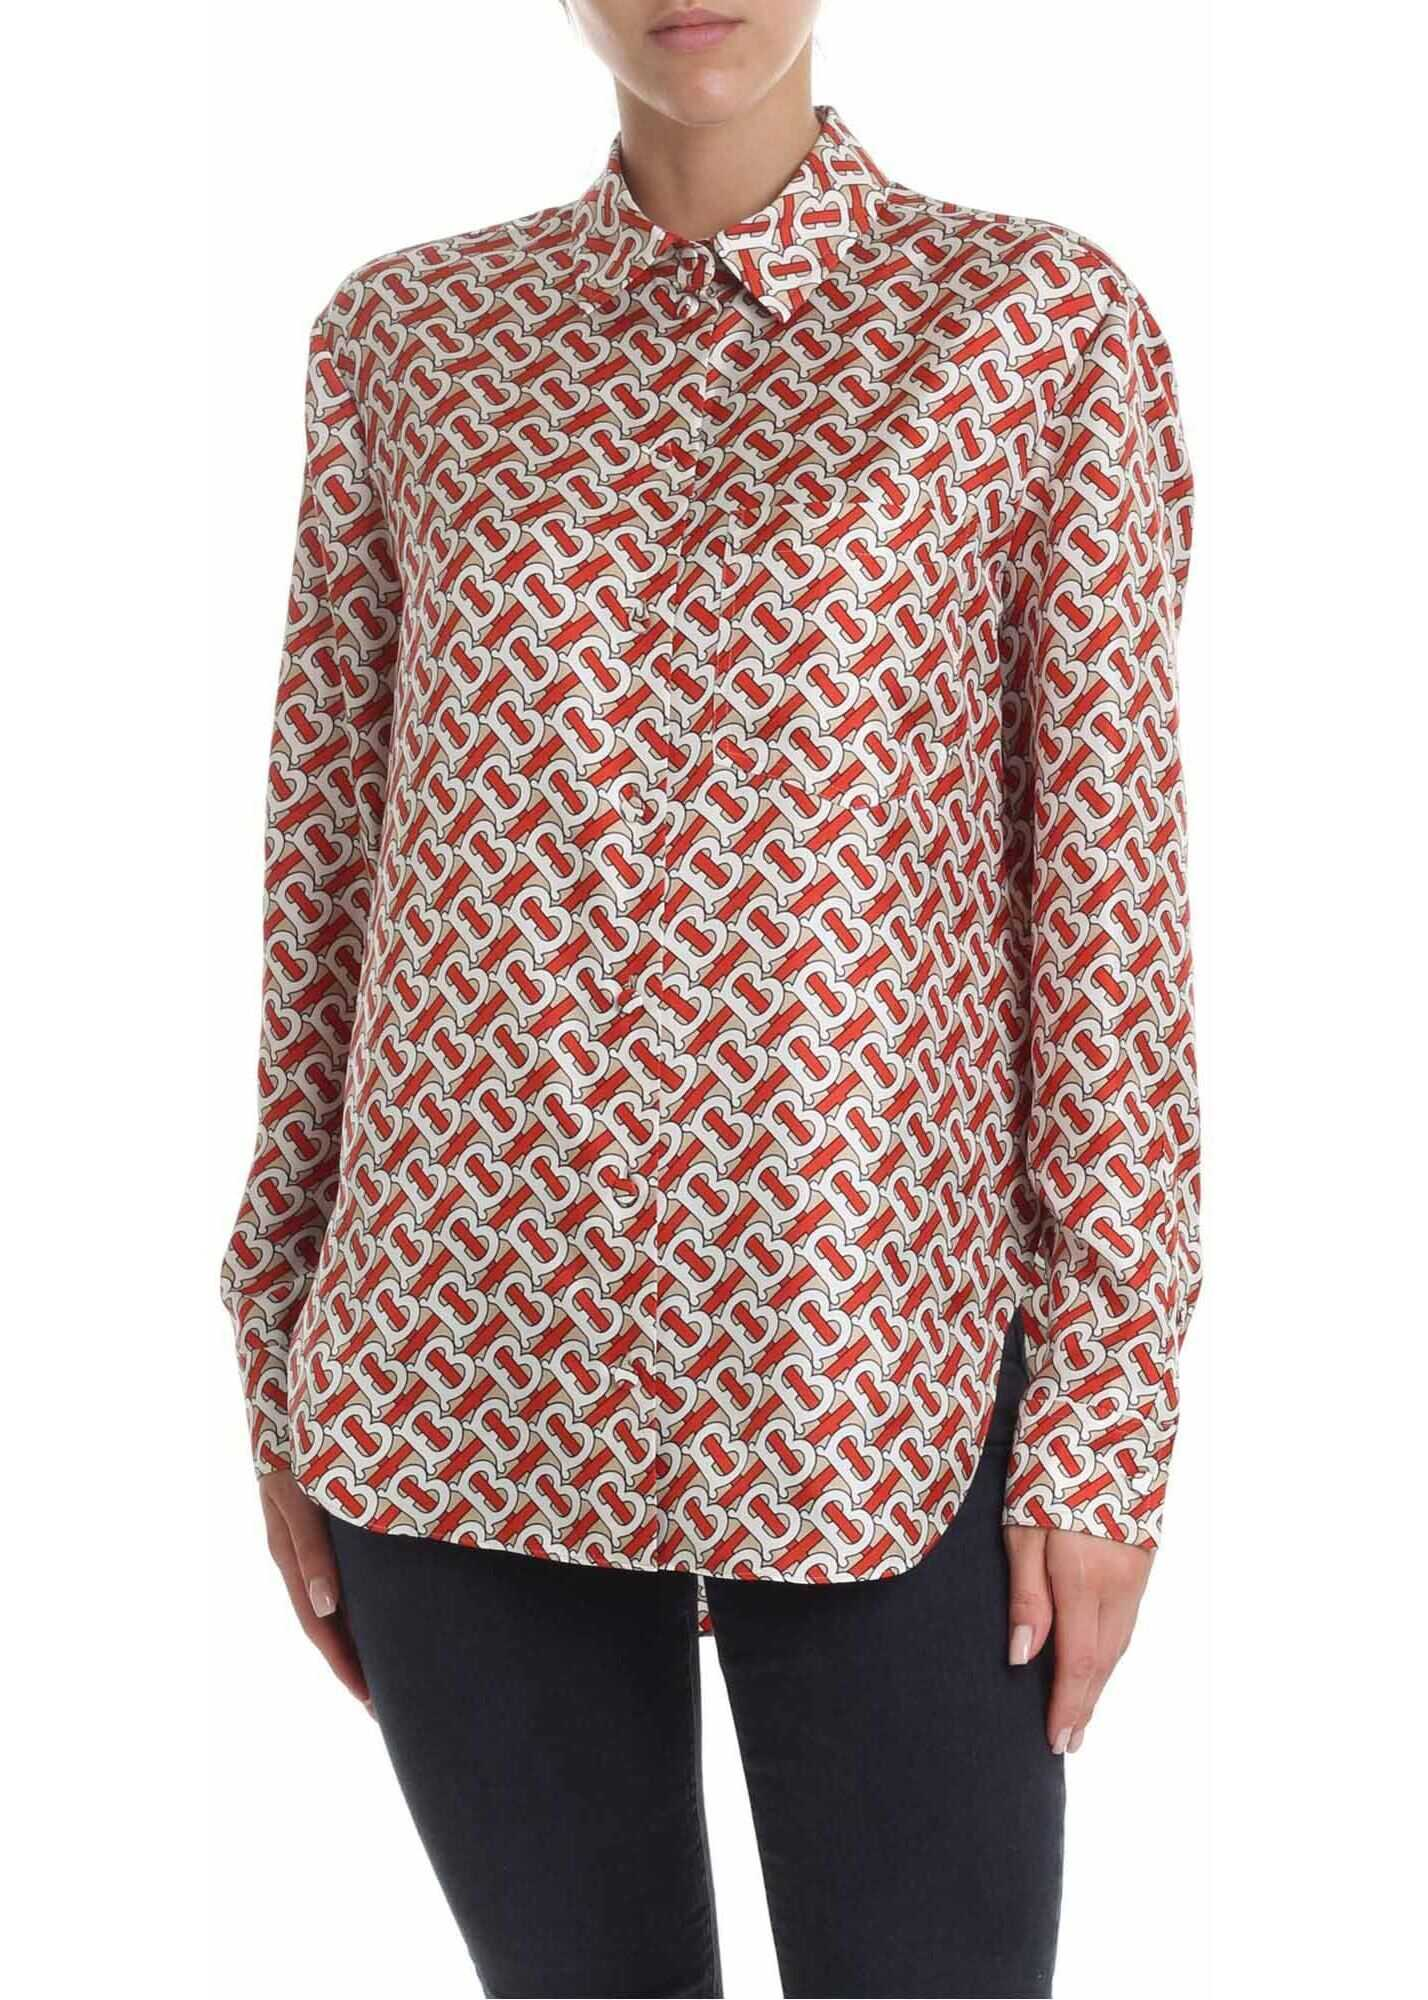 Godwit Monogram Print Shirt In Red Vermilion thumbnail